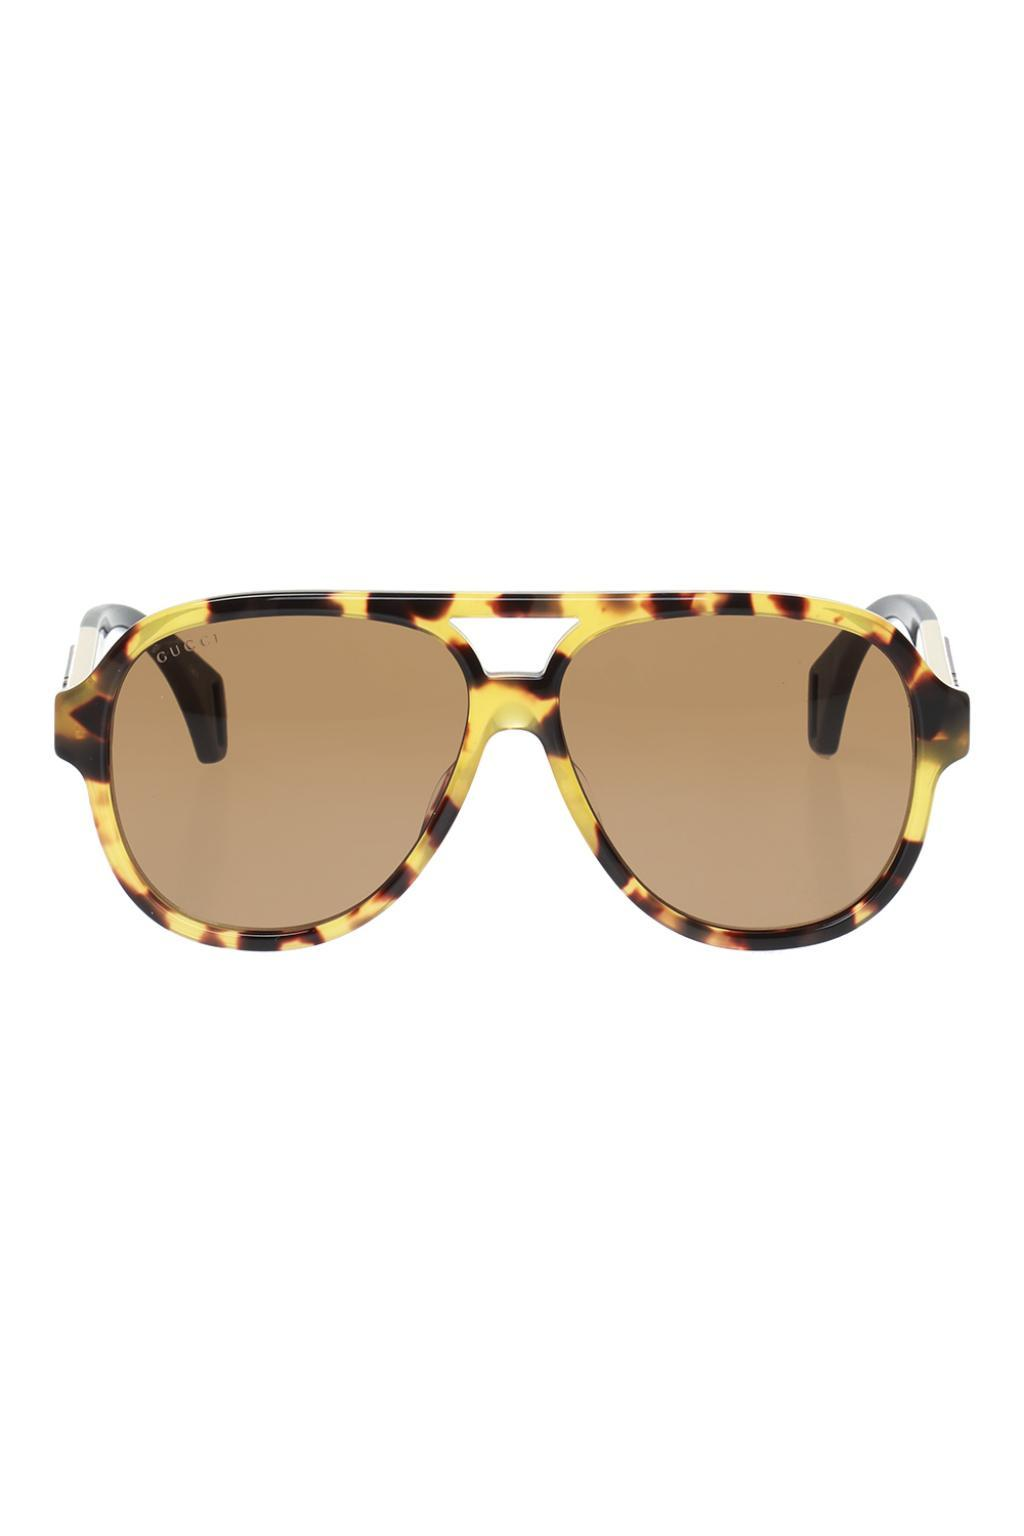 5e5f46036 Lyst - Gucci Sunglasses With A Logo in Brown for Men